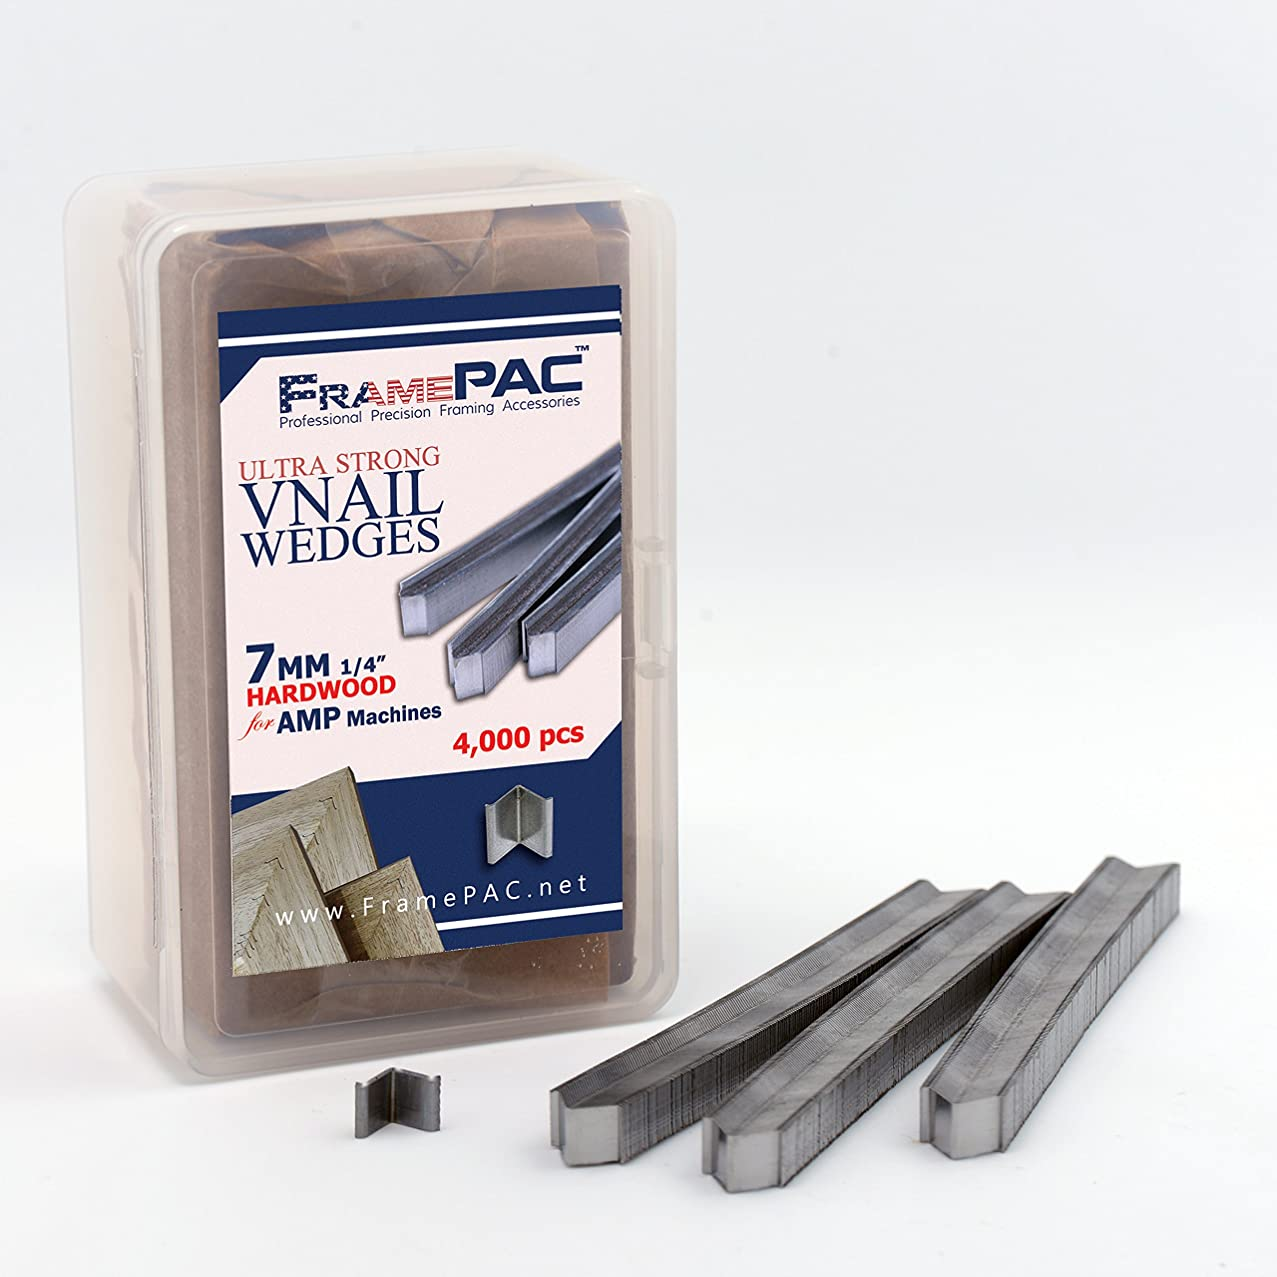 V Nails for Picture Framing - Ultra Strong - 7mm (1/4 Inch) Vnail Wedges for Joining Picture Frame Corners - Hardwood Frames - AMP [4000 V Nail Pack, Stacked]